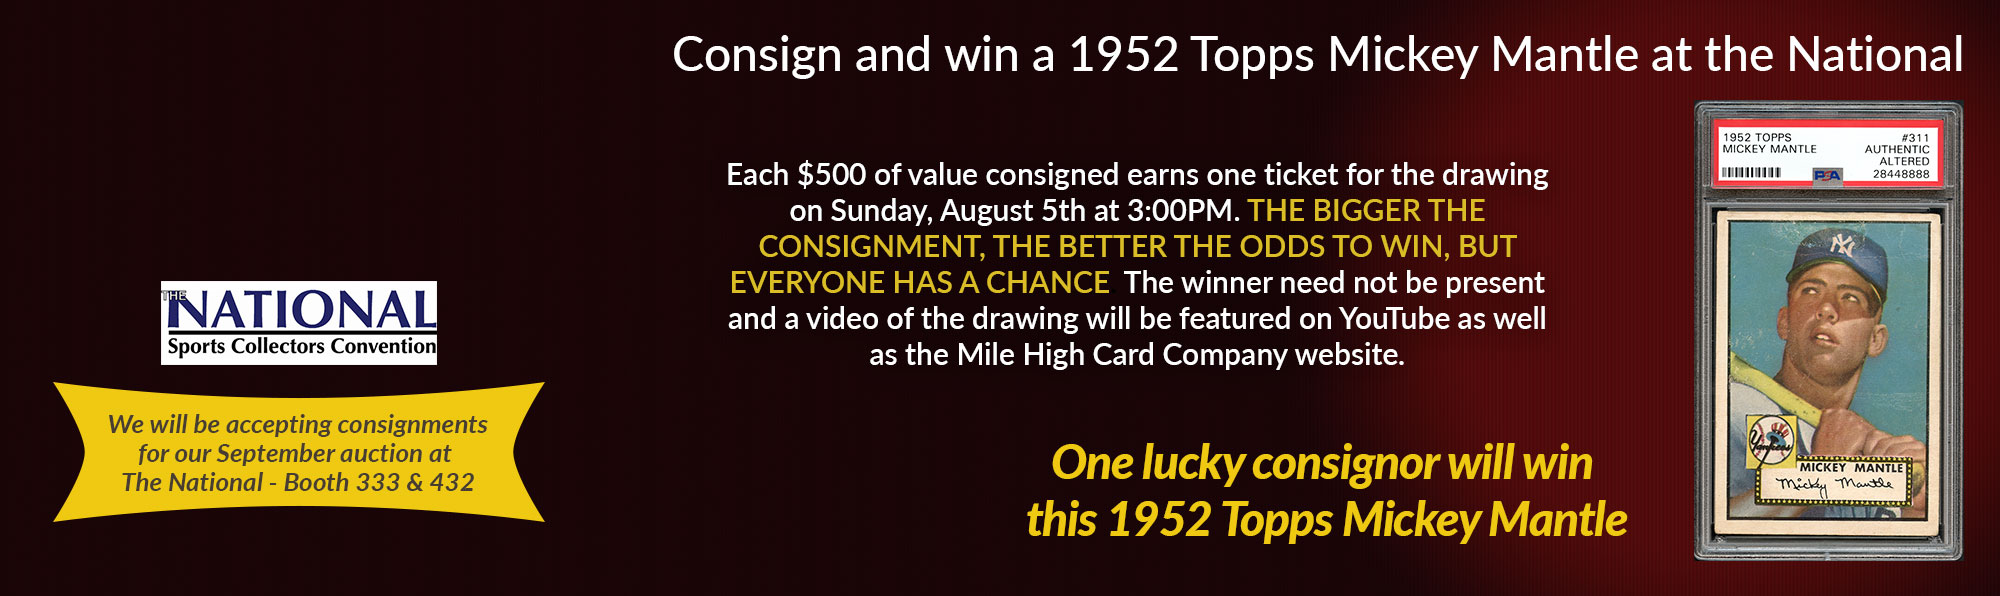 consign with MHCC at the National and win a 1952 Topps Mickey Mantle